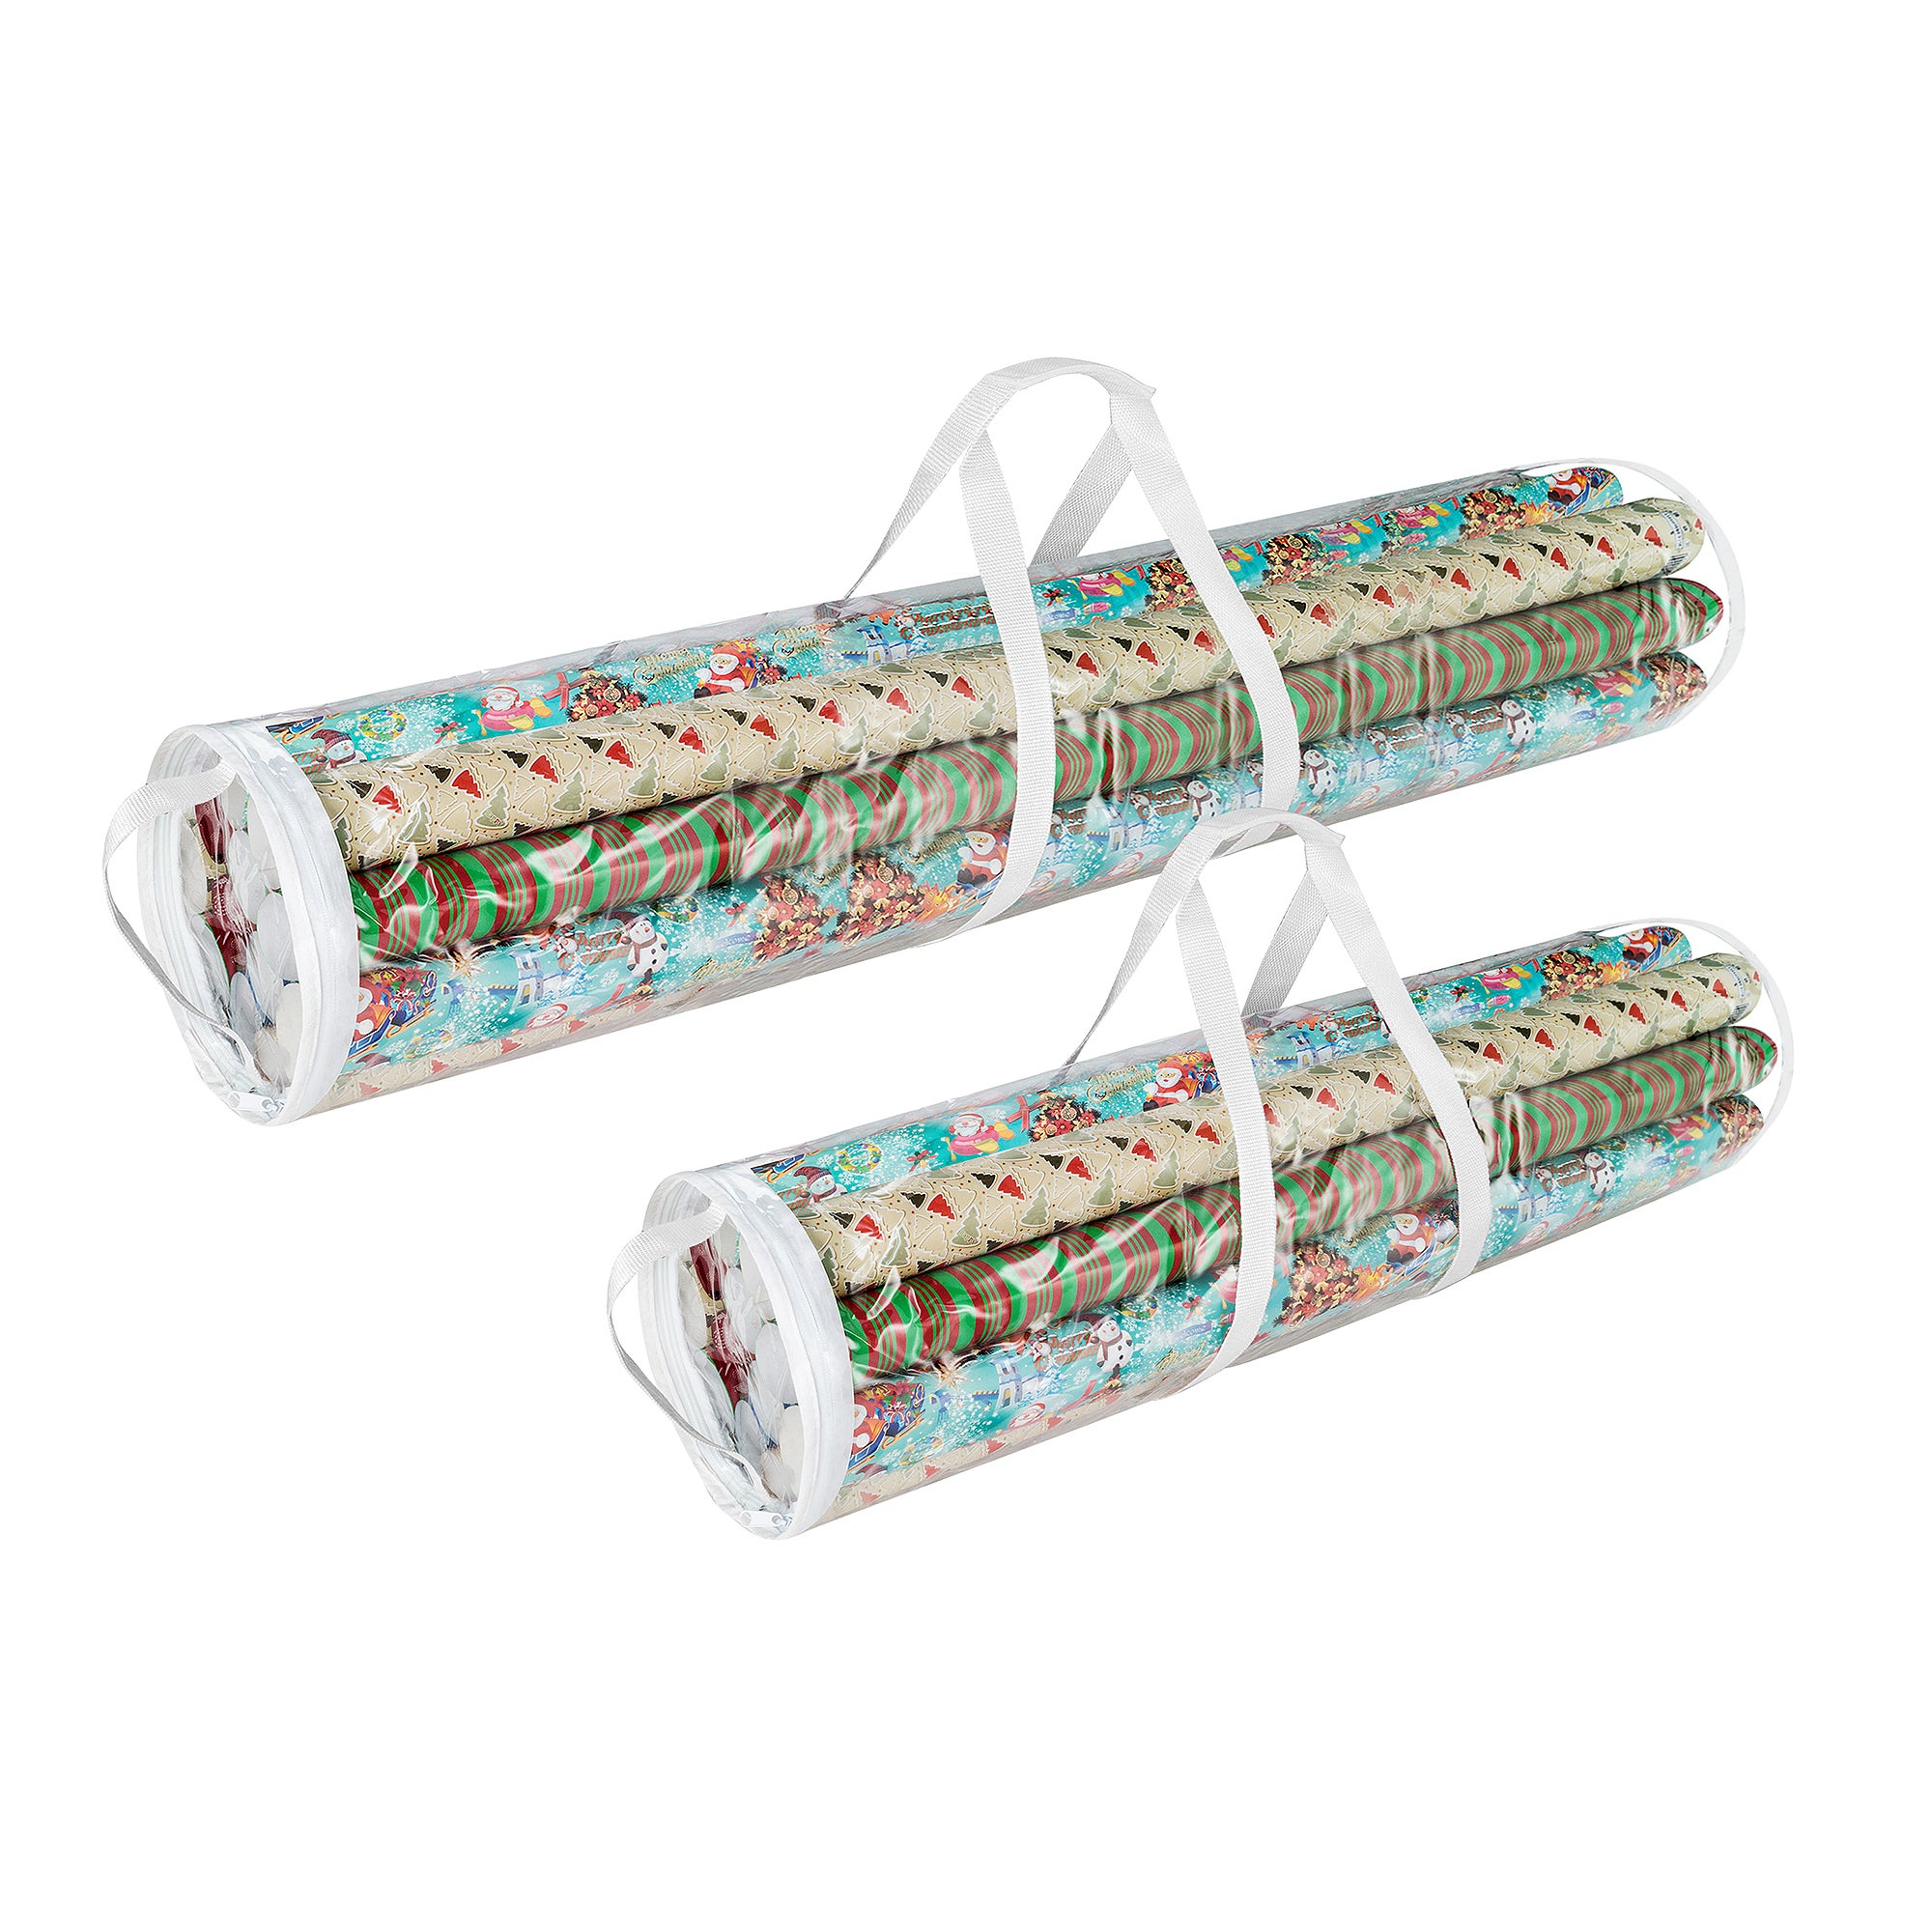 Exceptionnel Shop Elf Stor White And Clear PVC 40 Inch And 31 Inch Christmas Wrapping  Paper Storage Bag Set   Free Shipping On Orders Over $45   Overstock.com    13435226